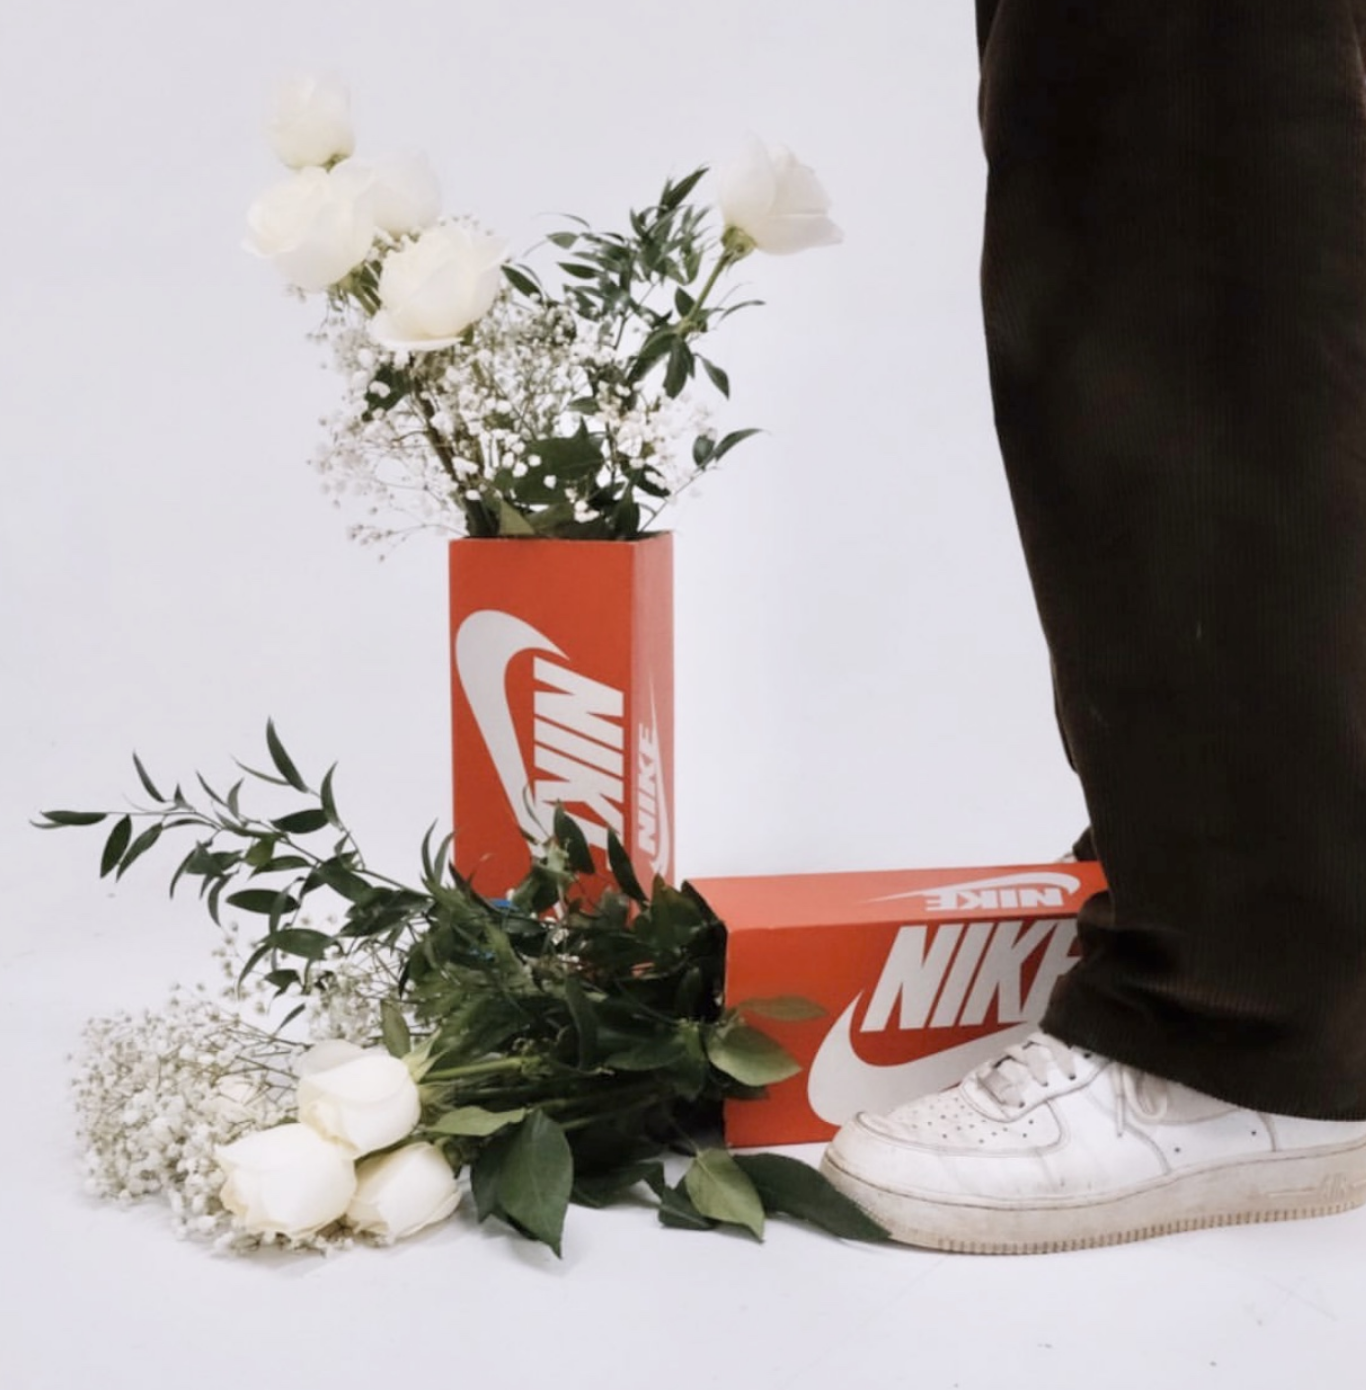 CI - Hydroflora: Nike shoes with 2 flower boxes.